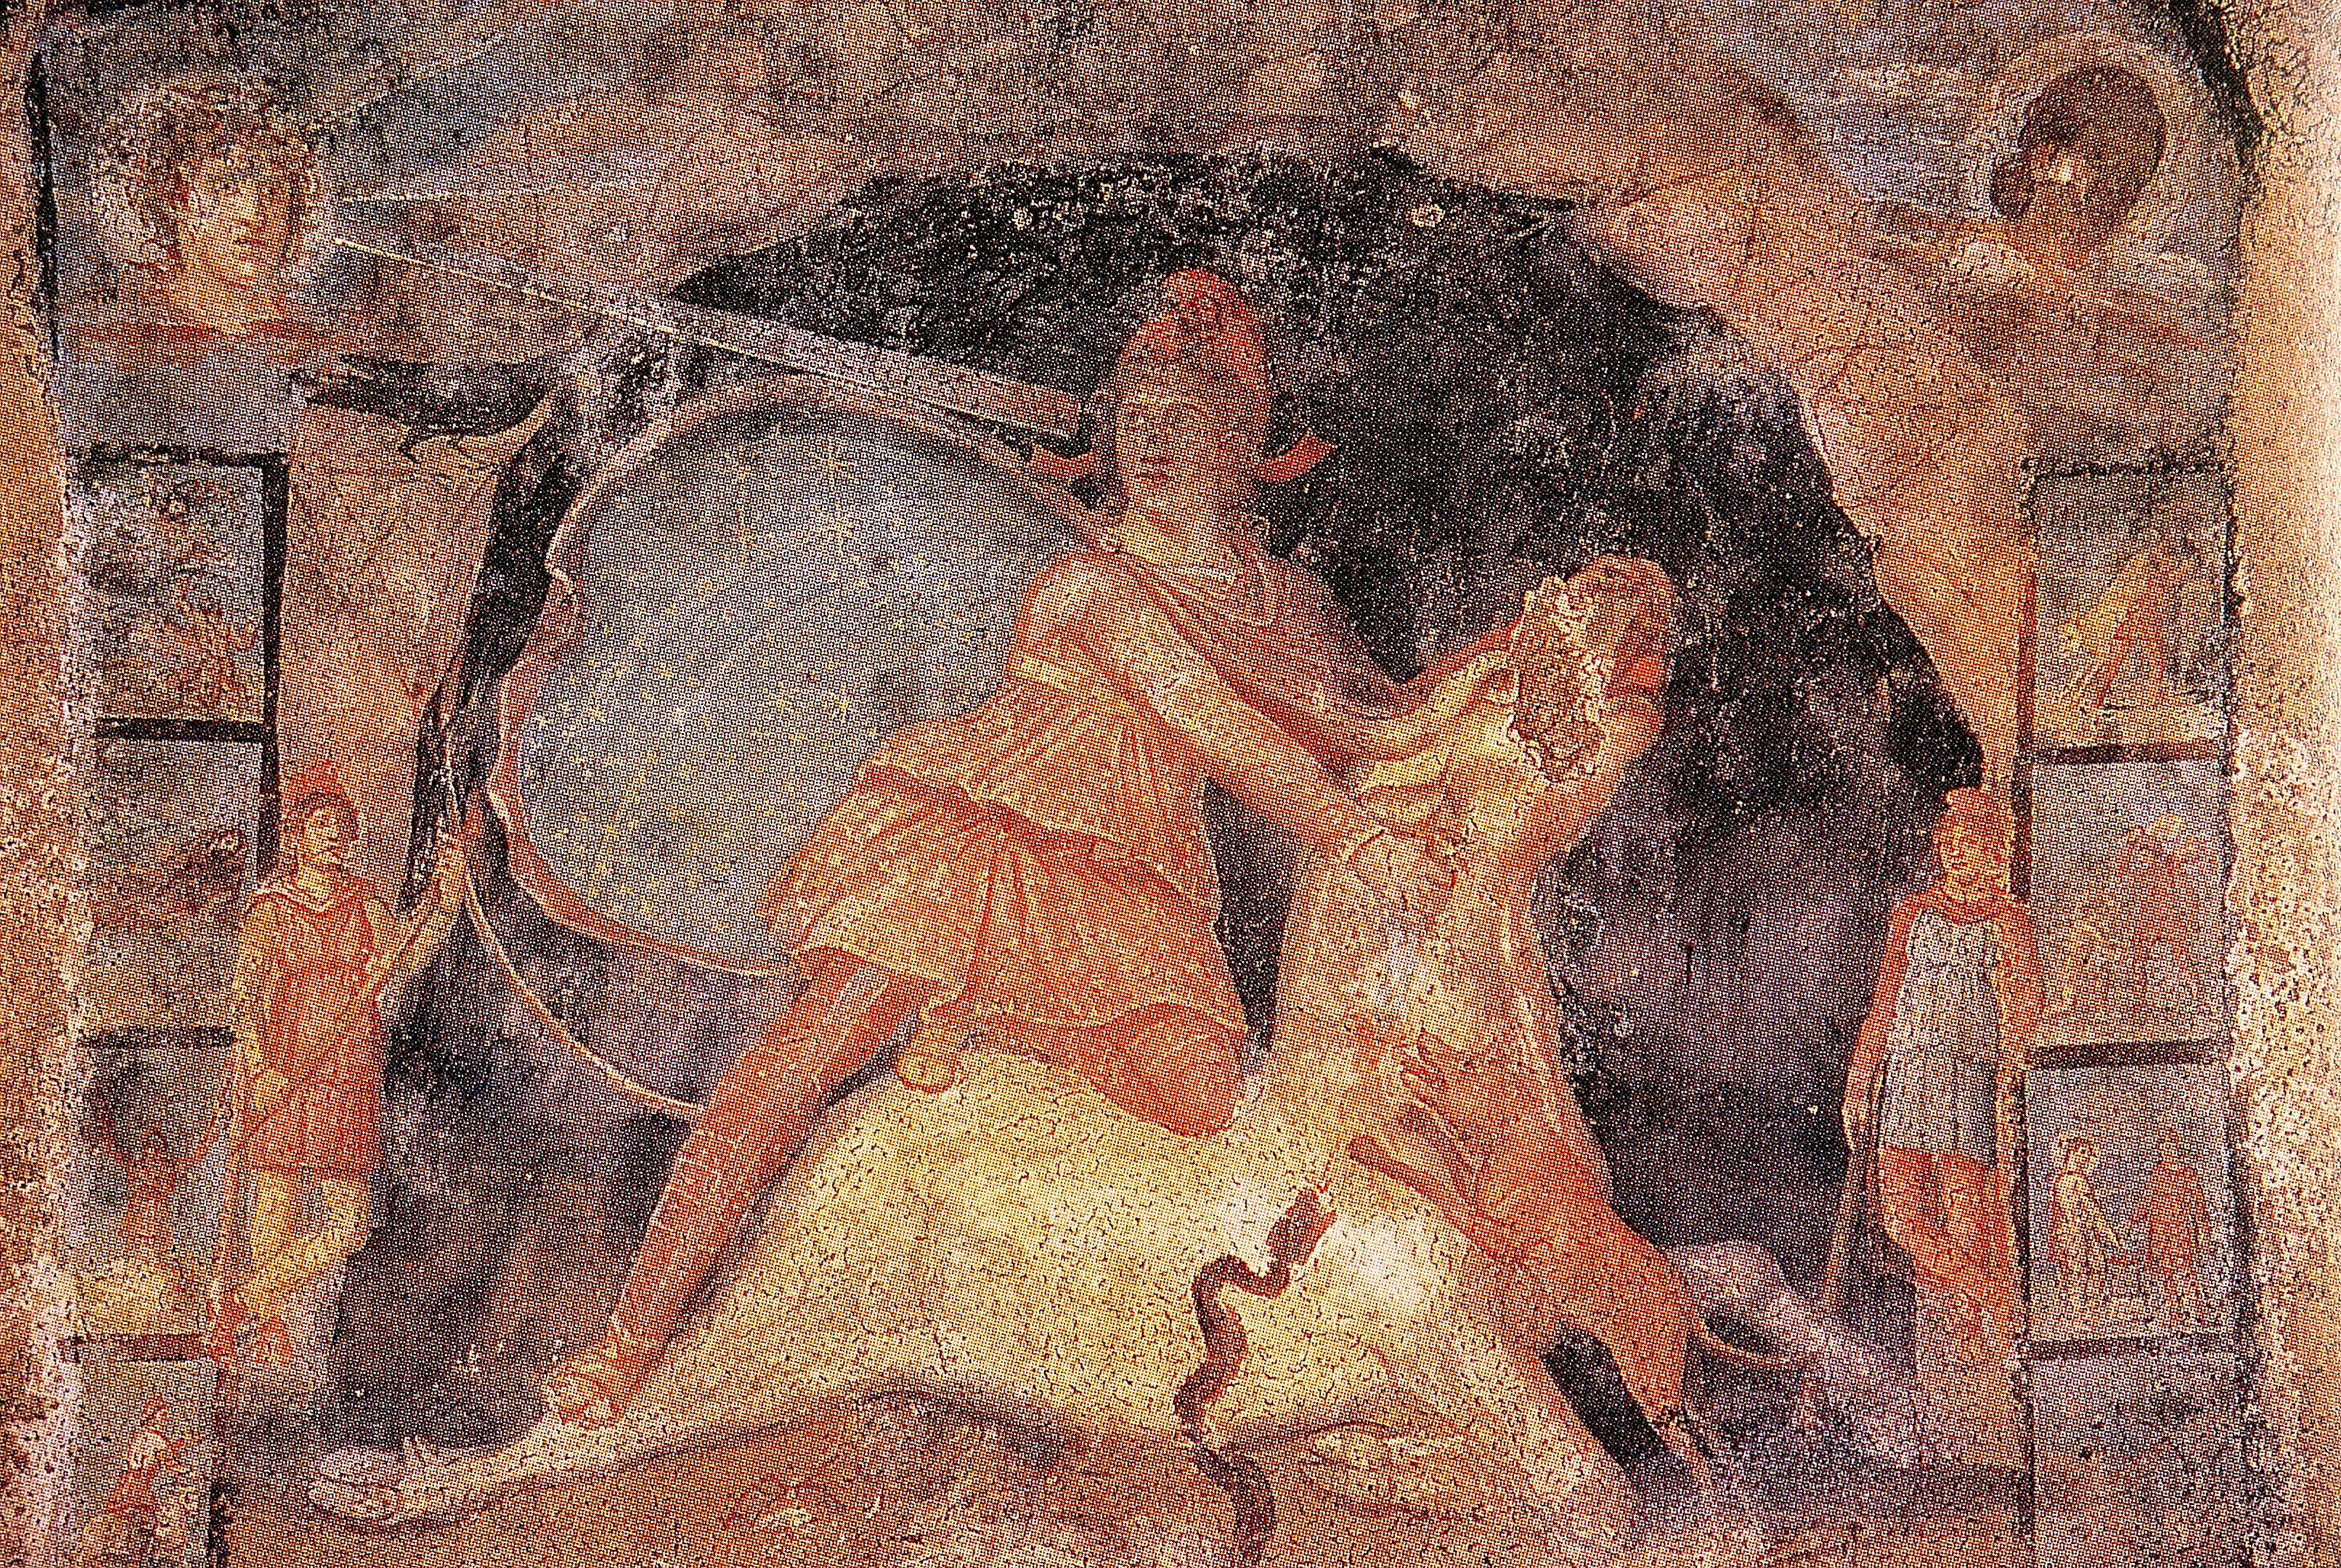 http://upload.wikimedia.org/wikipedia/commons/8/8e/Fresque_Mithraeum_Marino.jpg